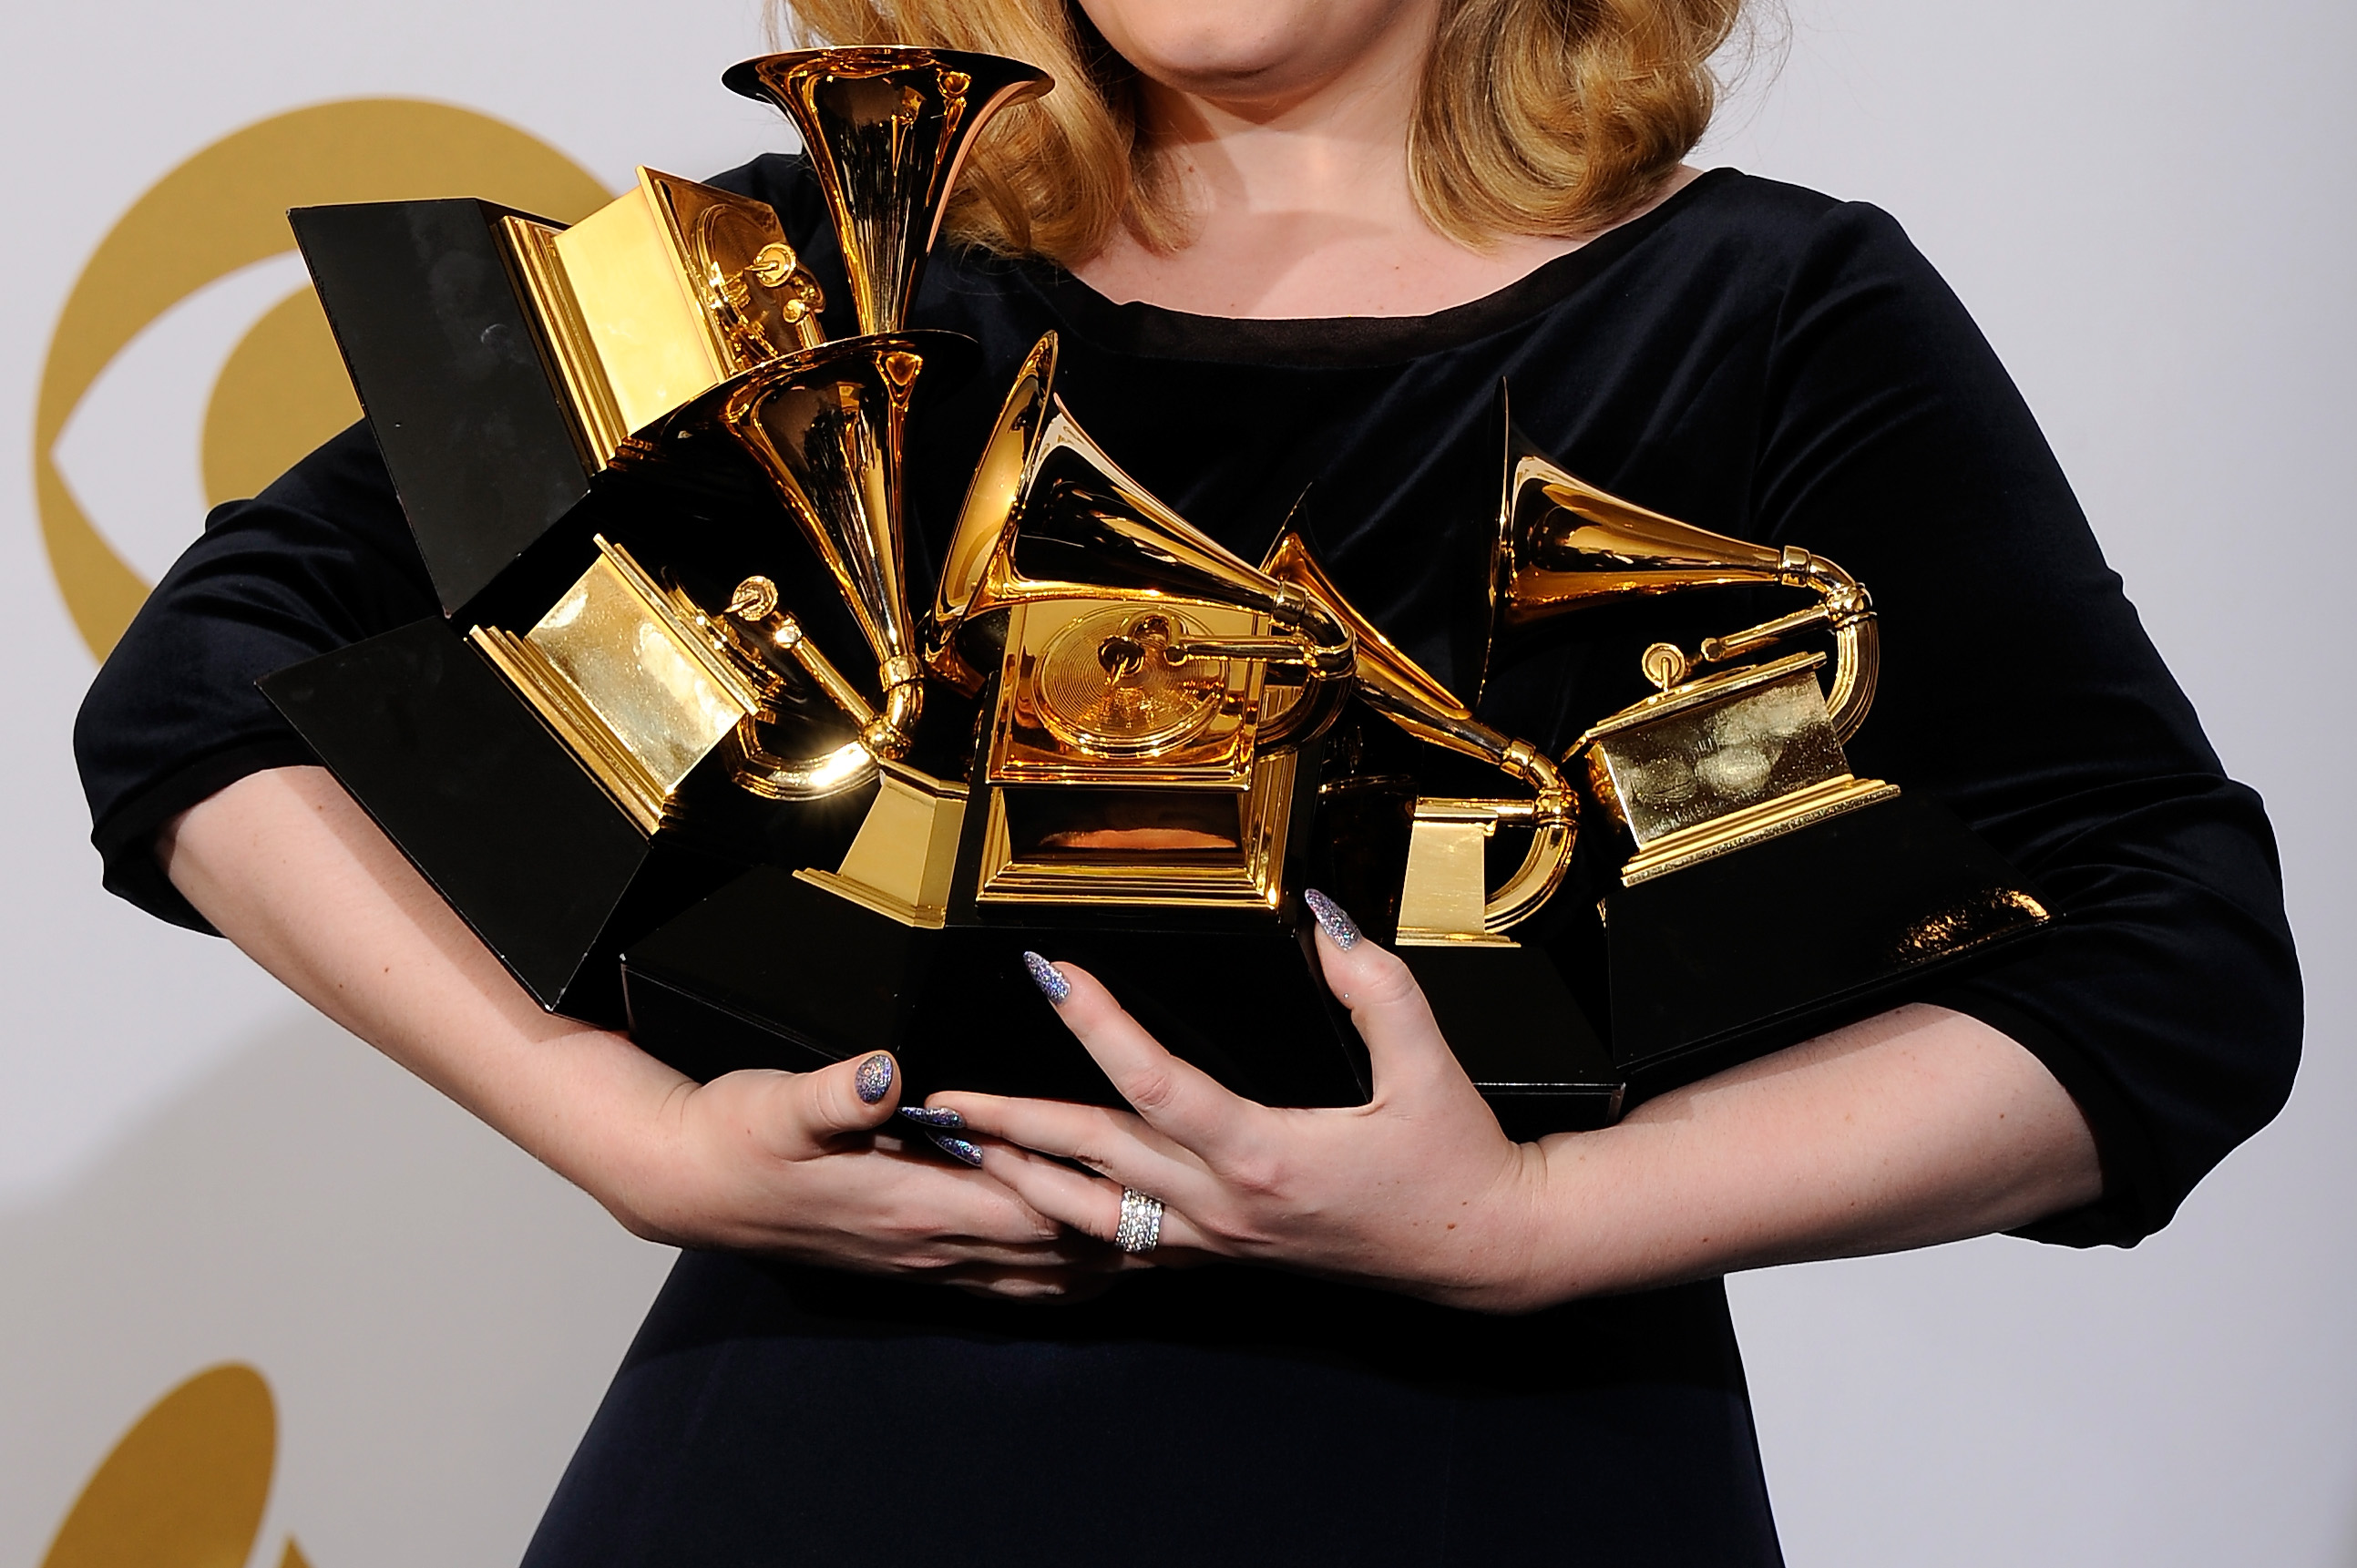 "LOS ANGELES, CA - FEBRUARY 12:  Singer Adele, winner of the GRAMMYs for Record of the Year for ""Rolling In The Deep"", Album of the Year for ""21"", Song of the Year for ""Rolling In The Deep"", Best Pop Solo Performance for ""Someone Like You"", Best Pop Vocal Album for ""21"" and Best Short Form Music Video for ""Rolling In The Deep"", poses in the press room at the 54th Annual GRAMMY Awards at Staples Center on February 12, 2012 in Los Angeles, California.  (Photo by Kevork Djansezian/Getty Images)"